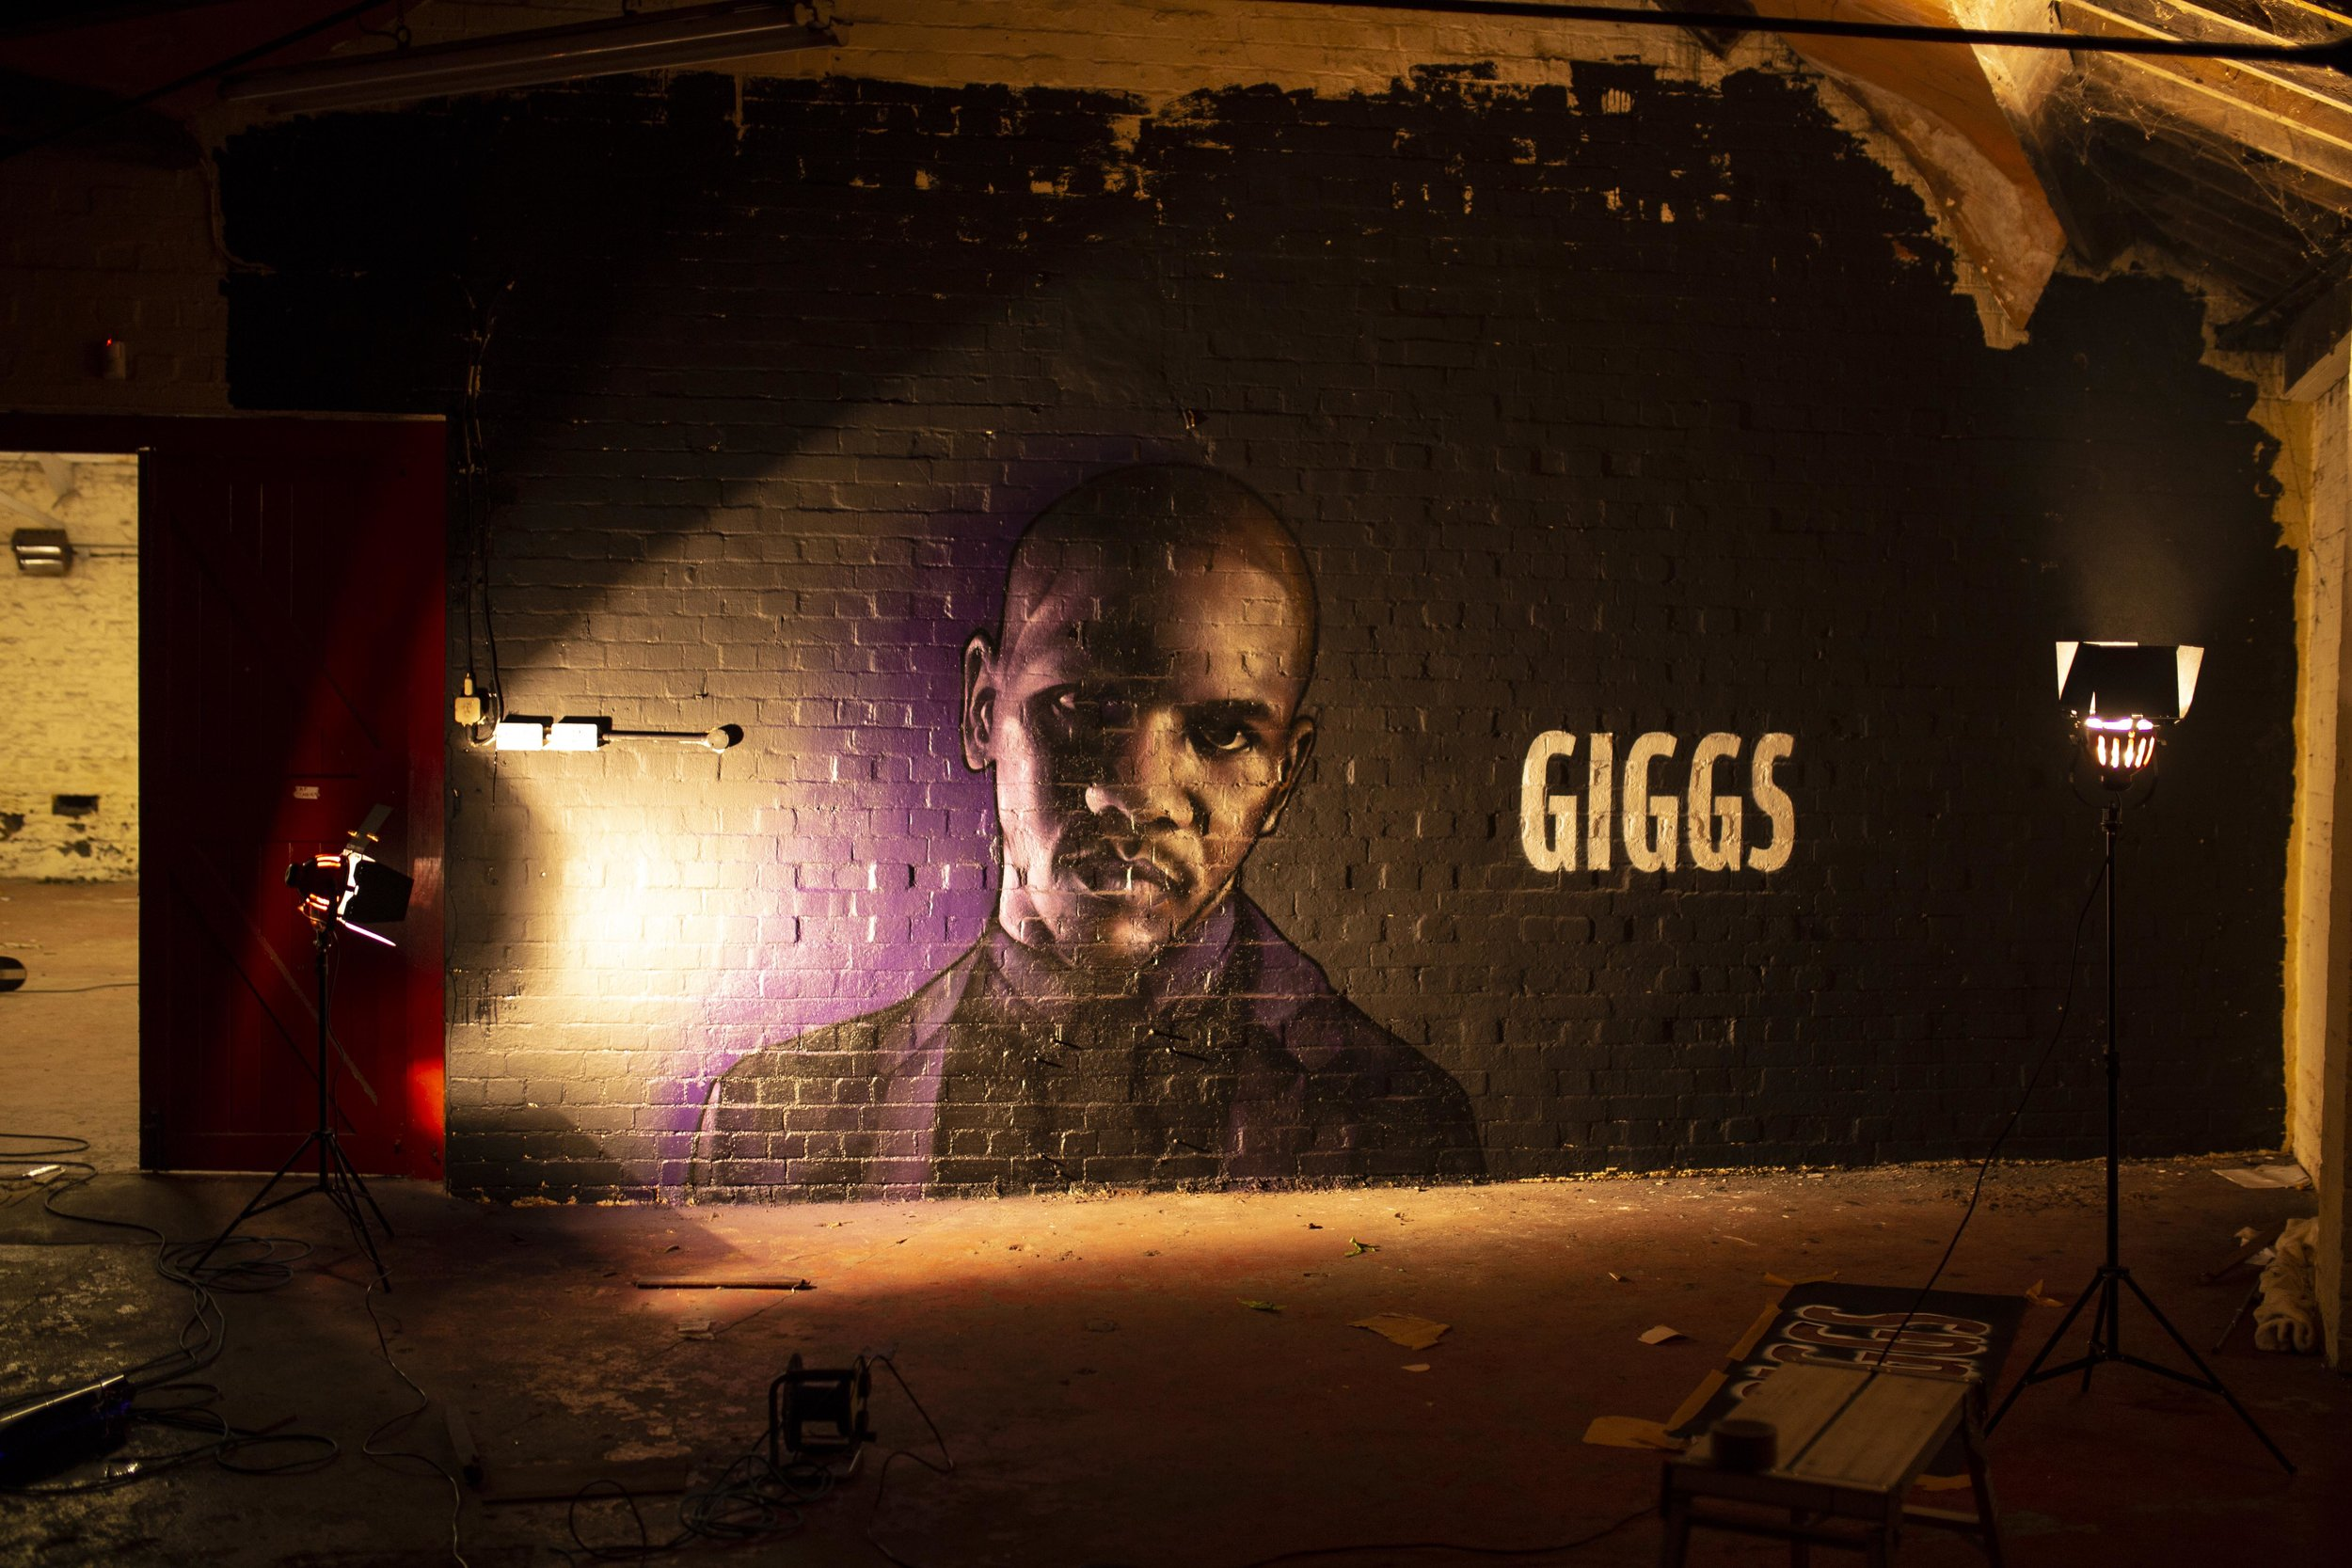 GIGGS - full reveal.jpg